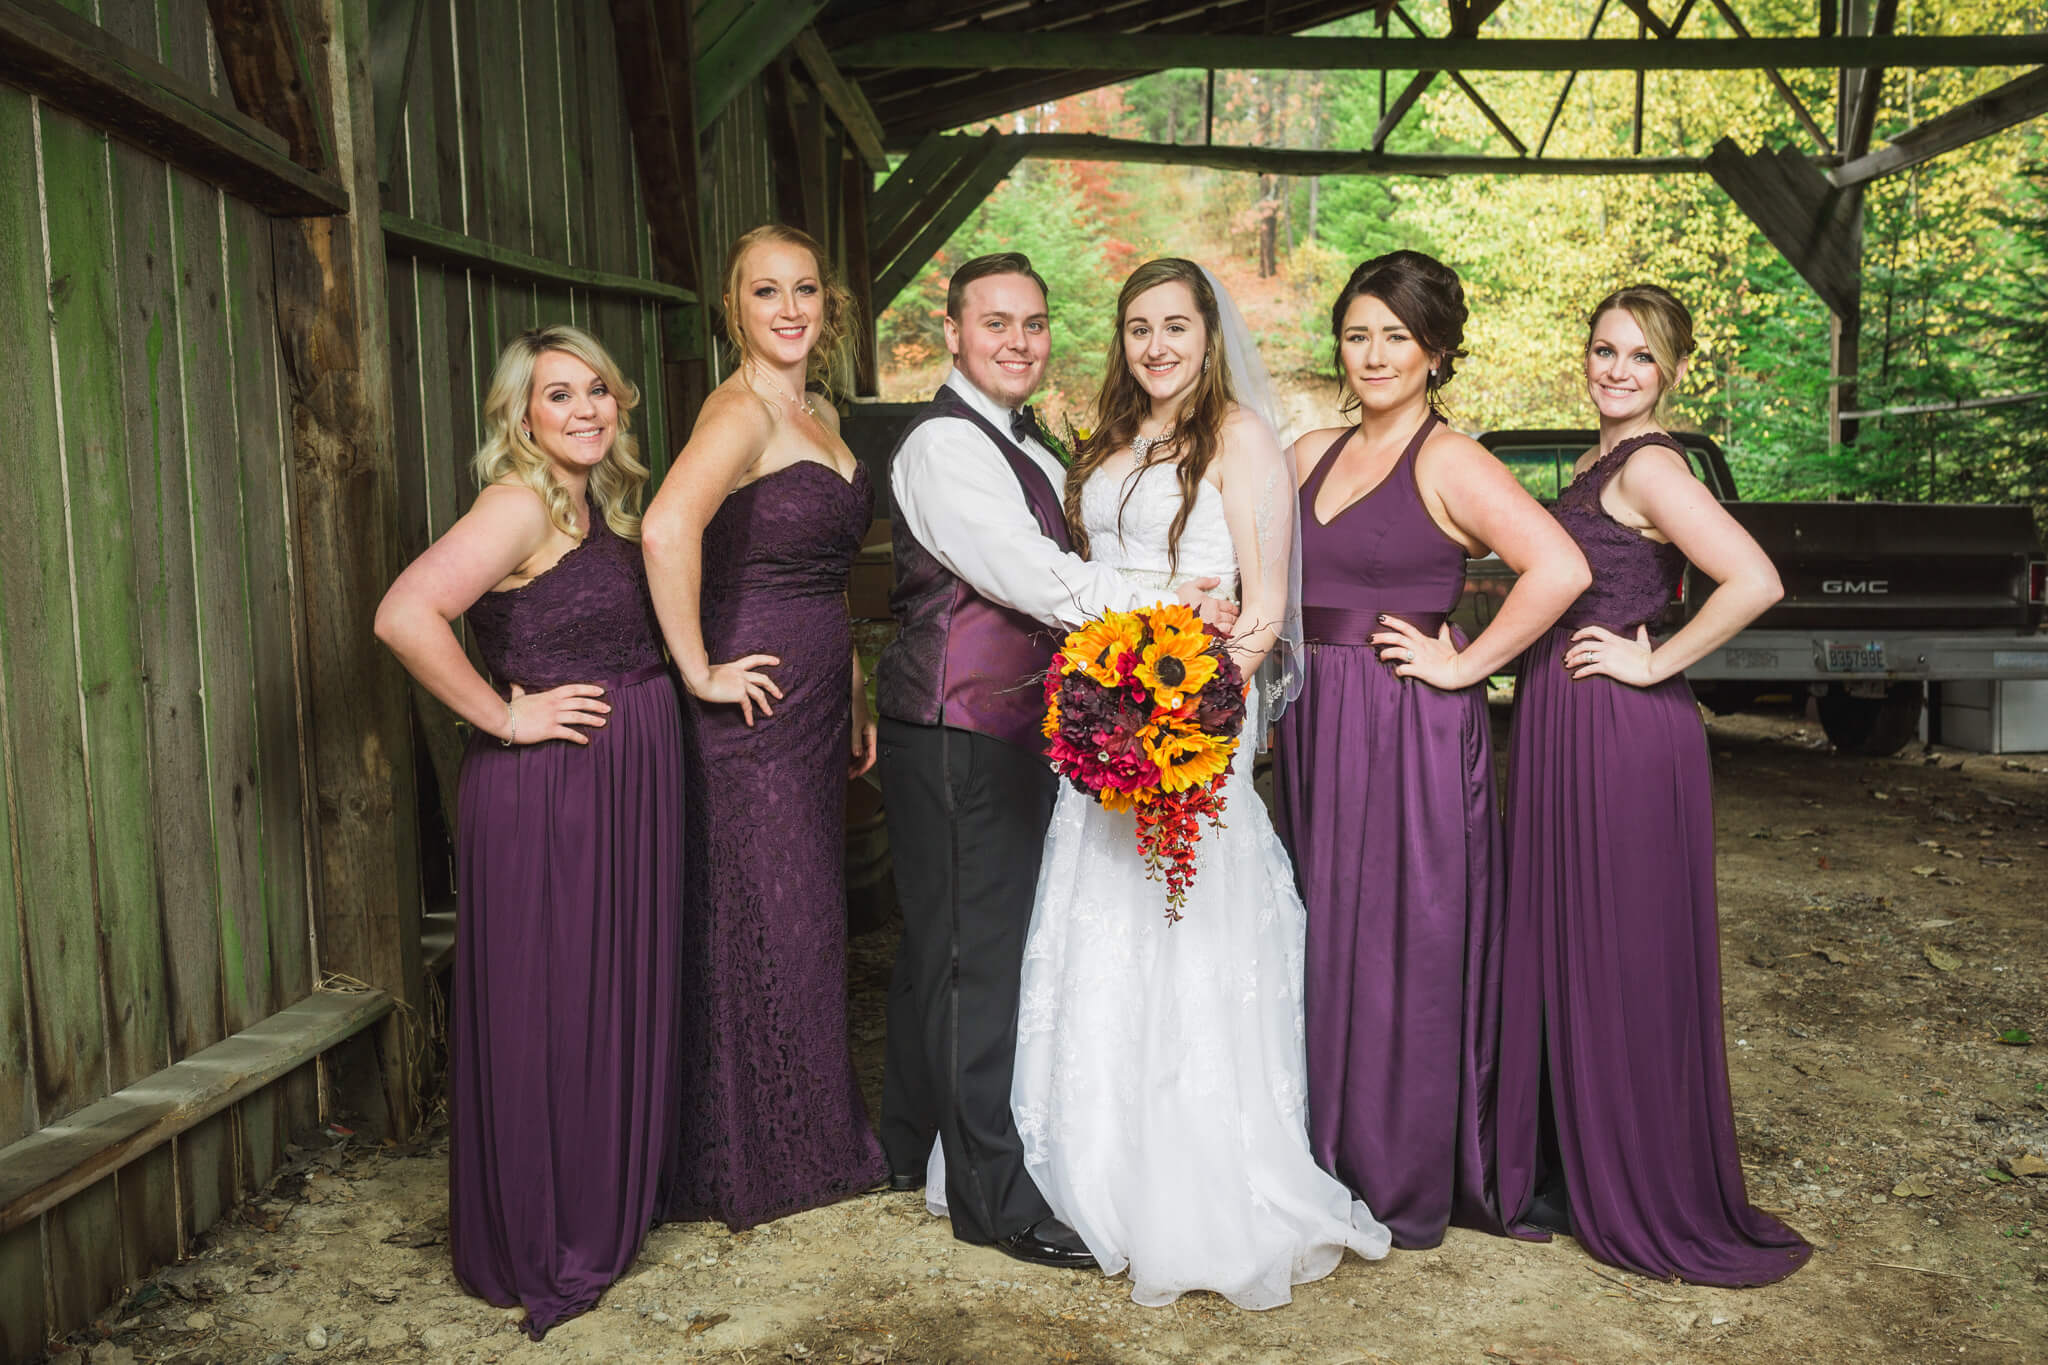 Mitcham's Barn Wedding-112.JPG